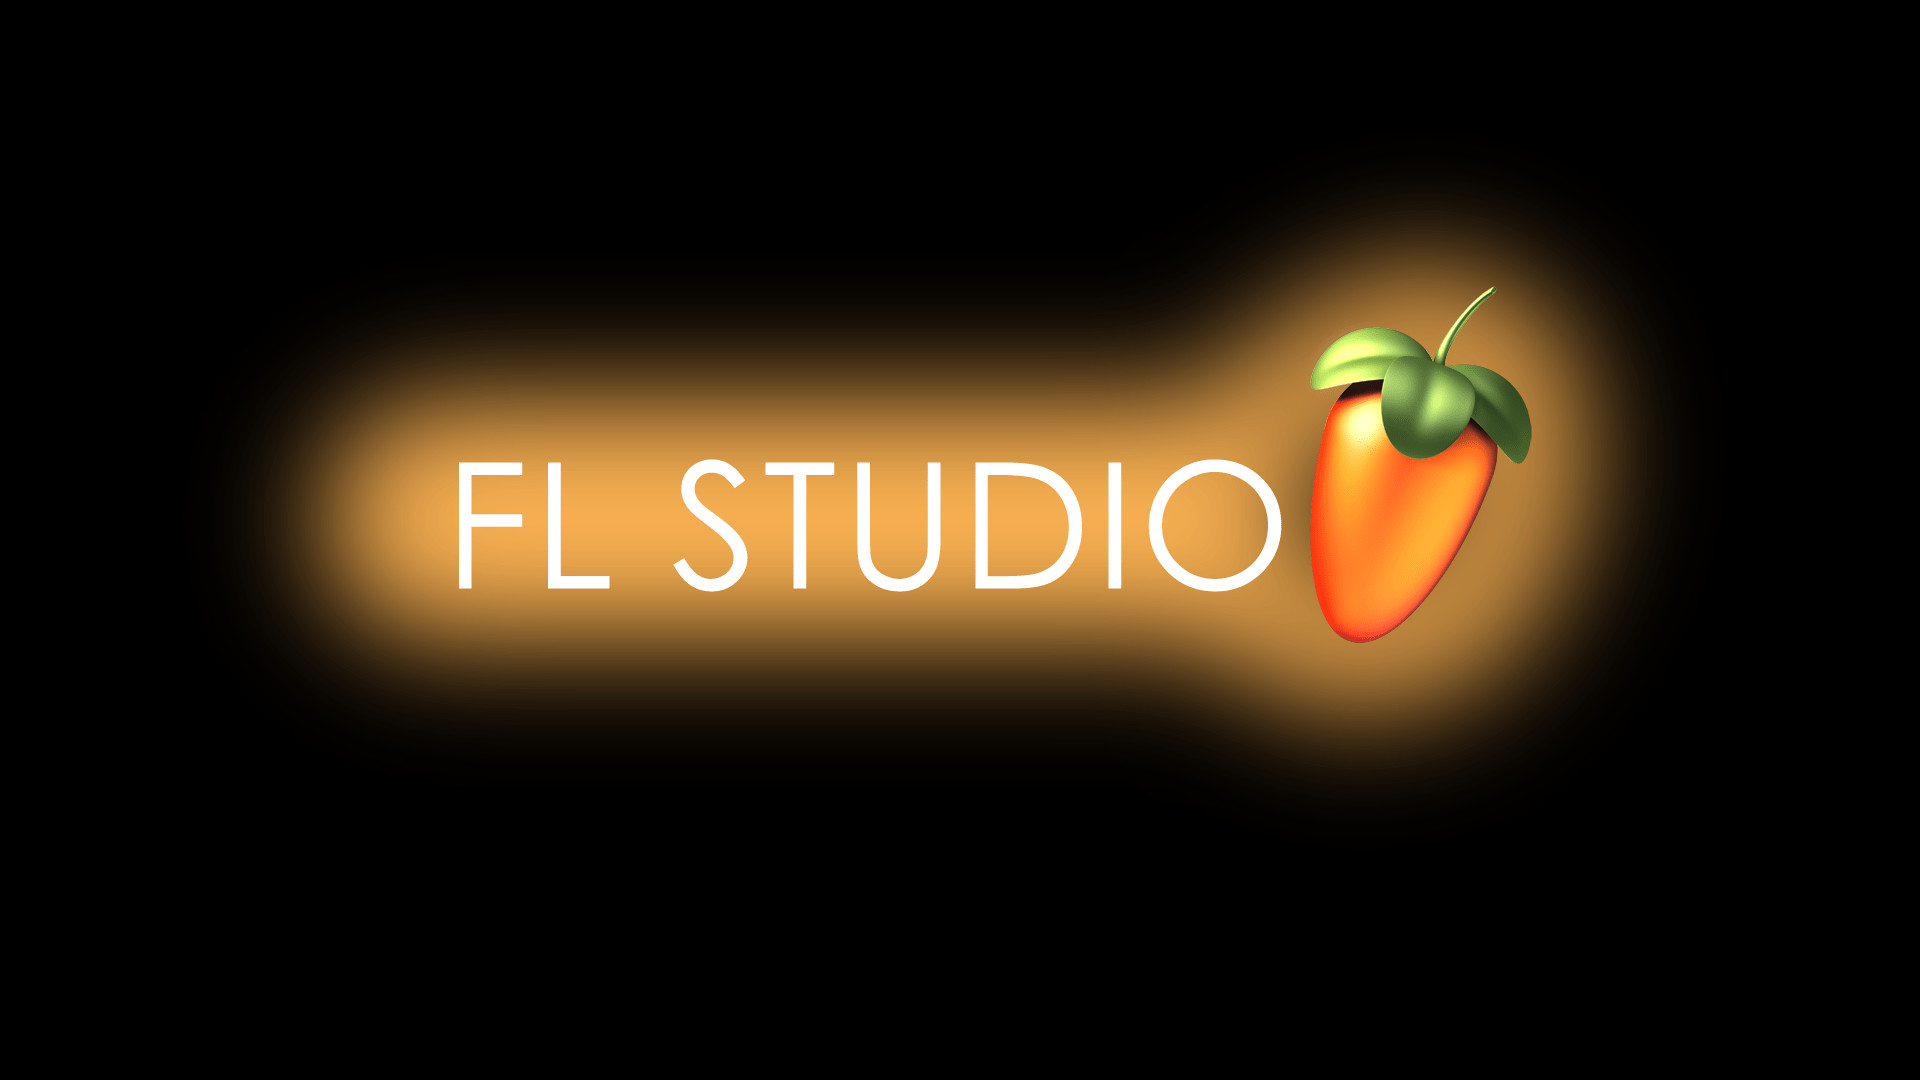 Fl Studio Wallpapers And Backgrounds 77 Images